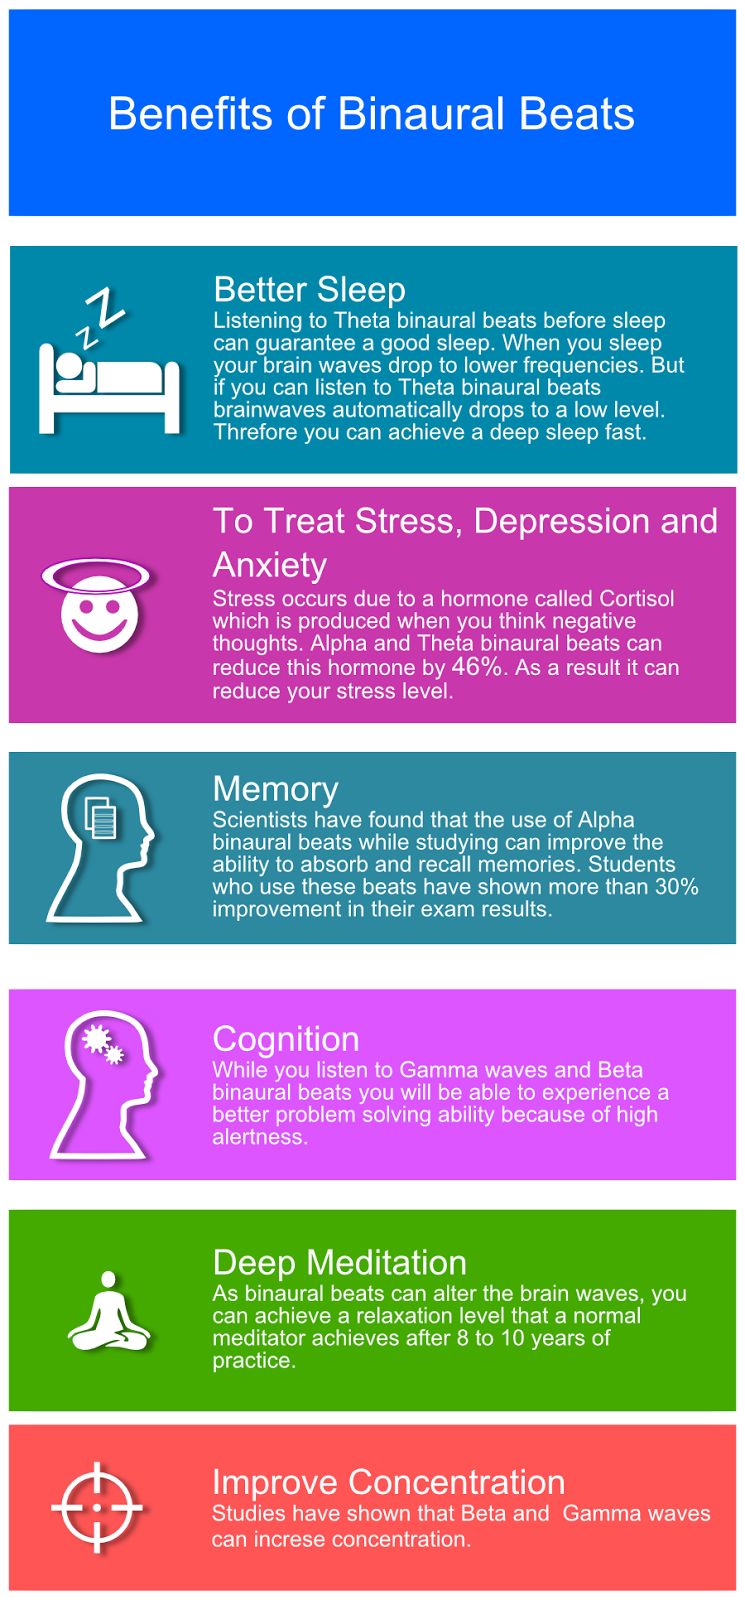 Learn about Binaural Beats and how to use them